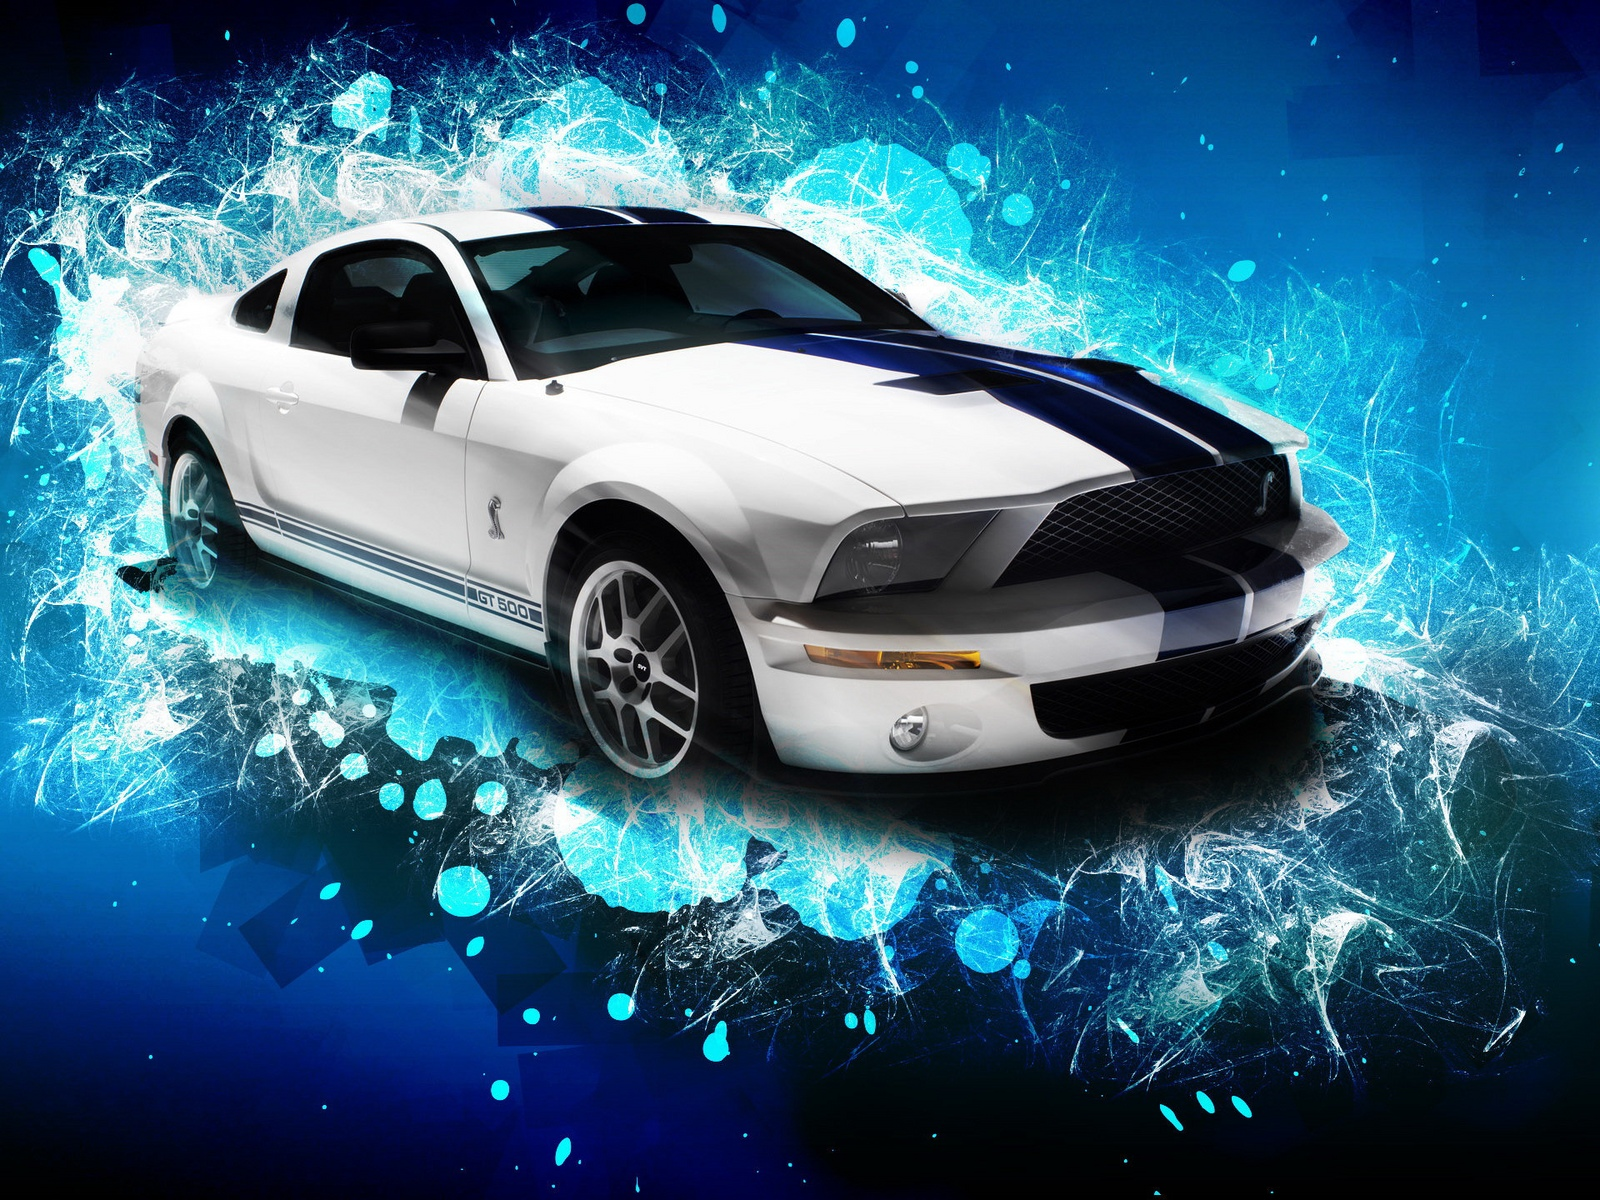 Hd Cool Car Wallpapers 1600x1200